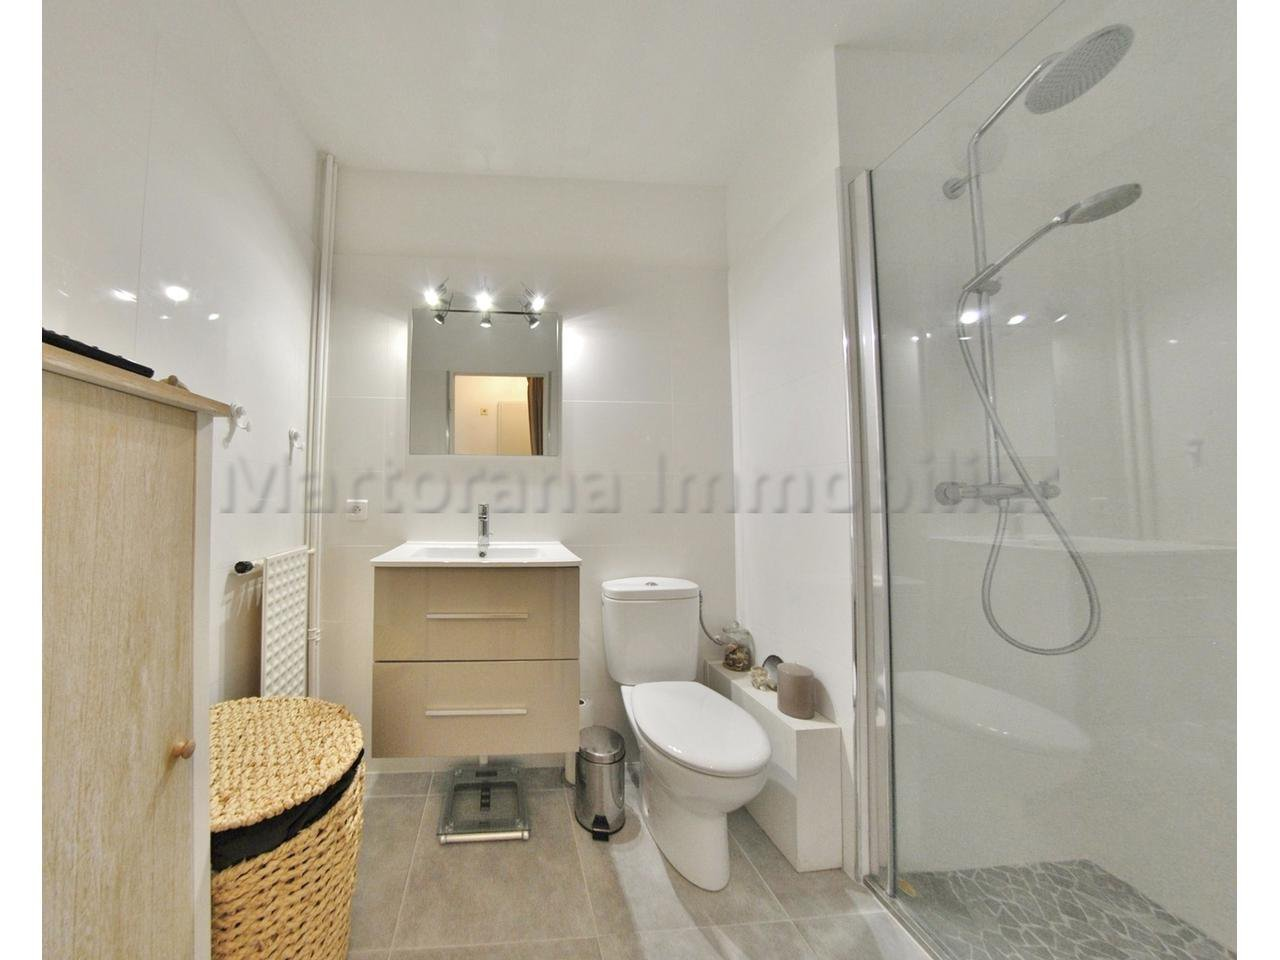 Rent ALL INCLUDED ! Nice furnished studio with terrace and swimmingpool to rent